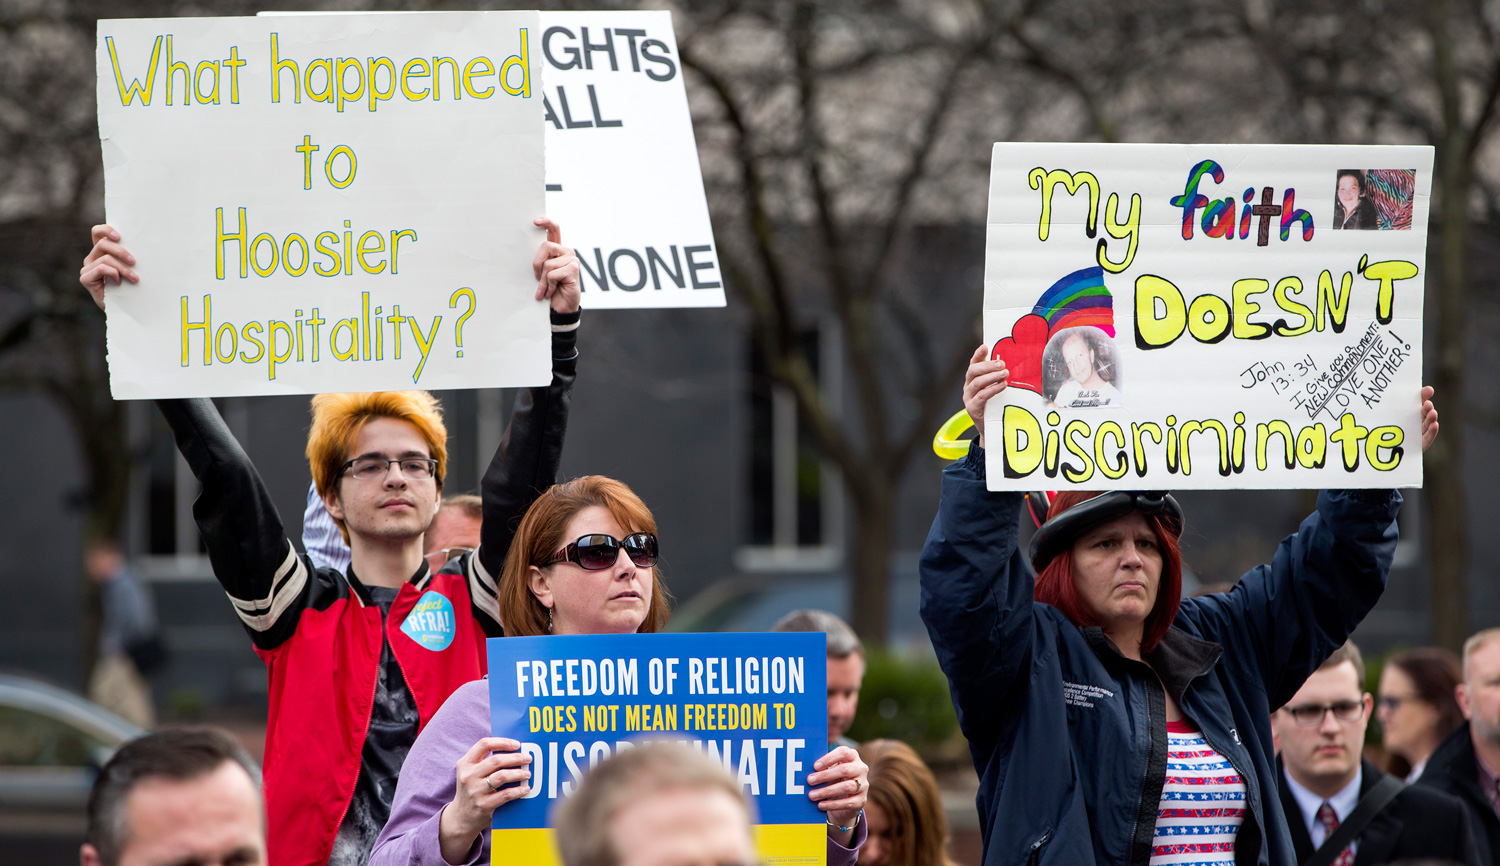 Anti-Religious Freedom Restoration Act demonstrators in Indianapolis in 2015. Aaron P. Bernstein/Getty Images.